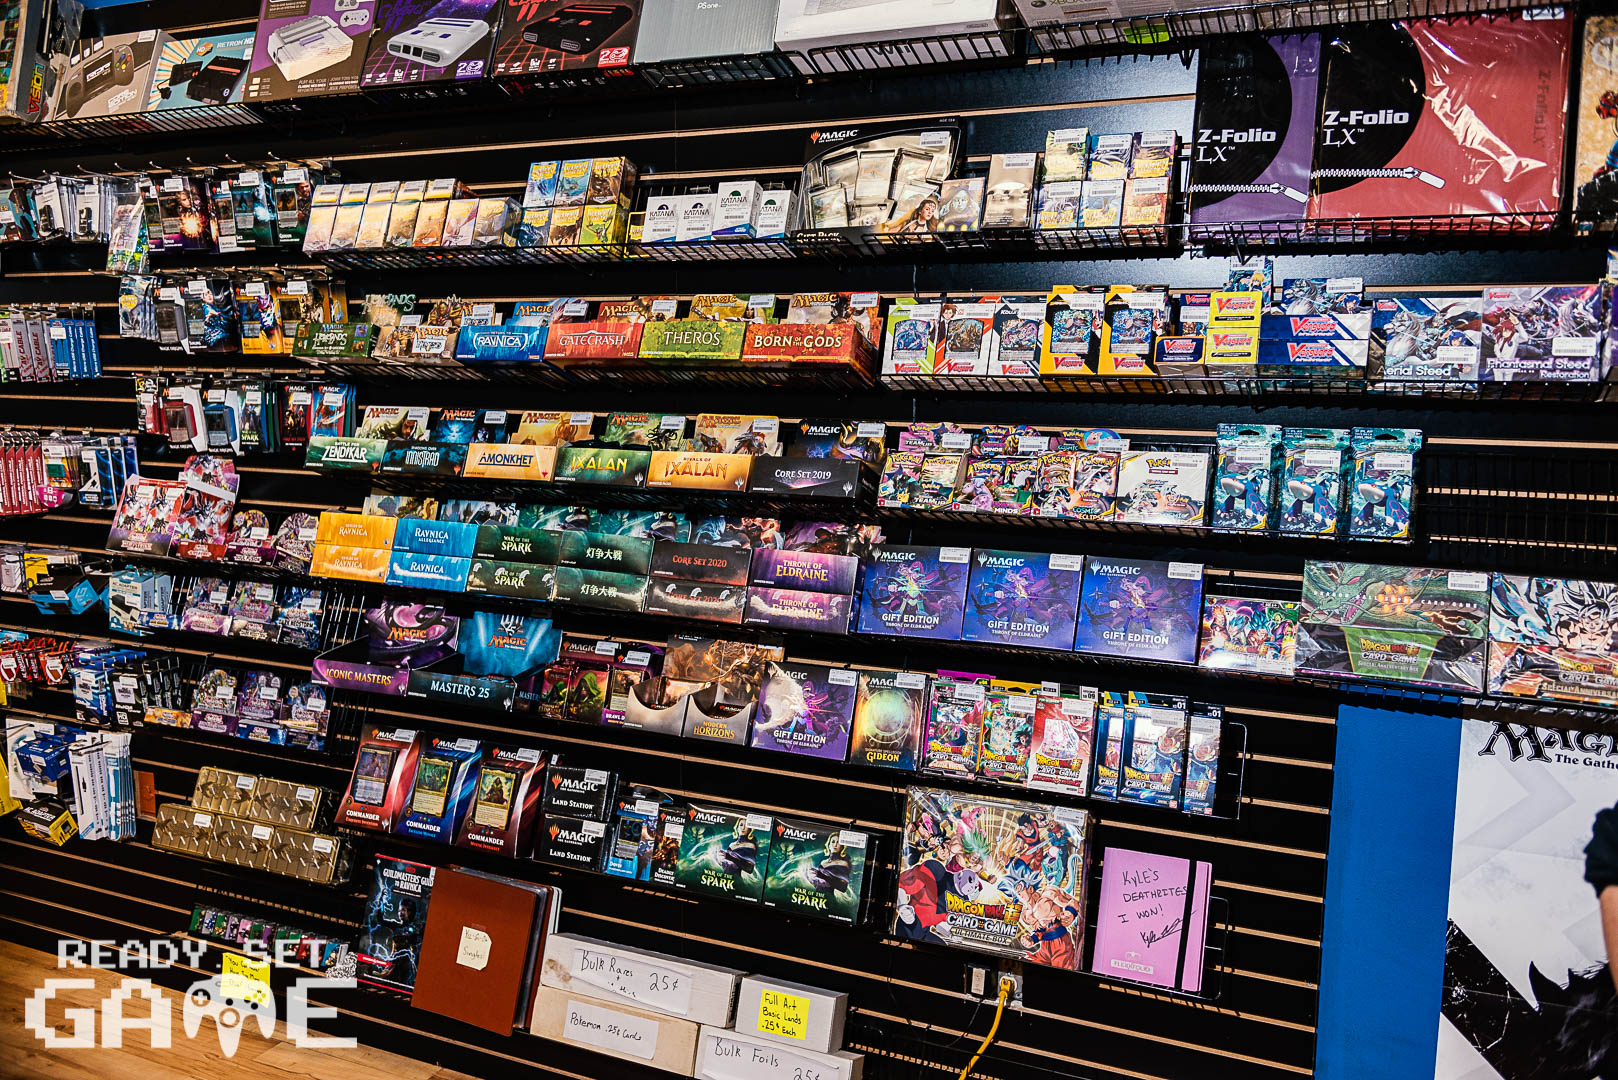 Ready set game behind the counter trading card games.